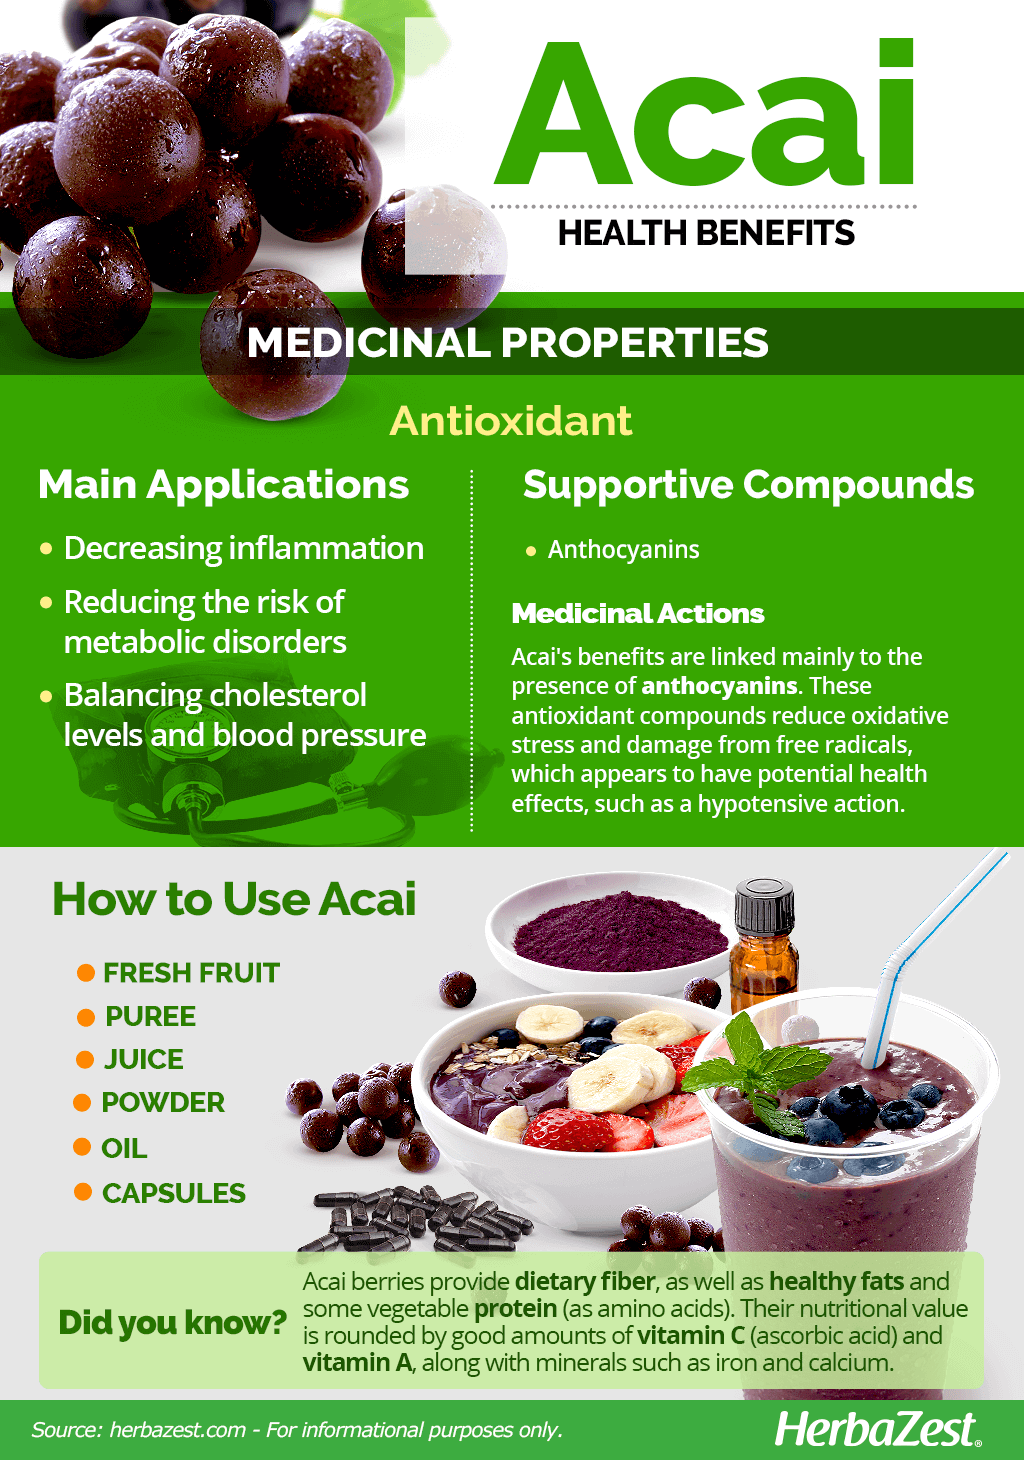 All About Acai